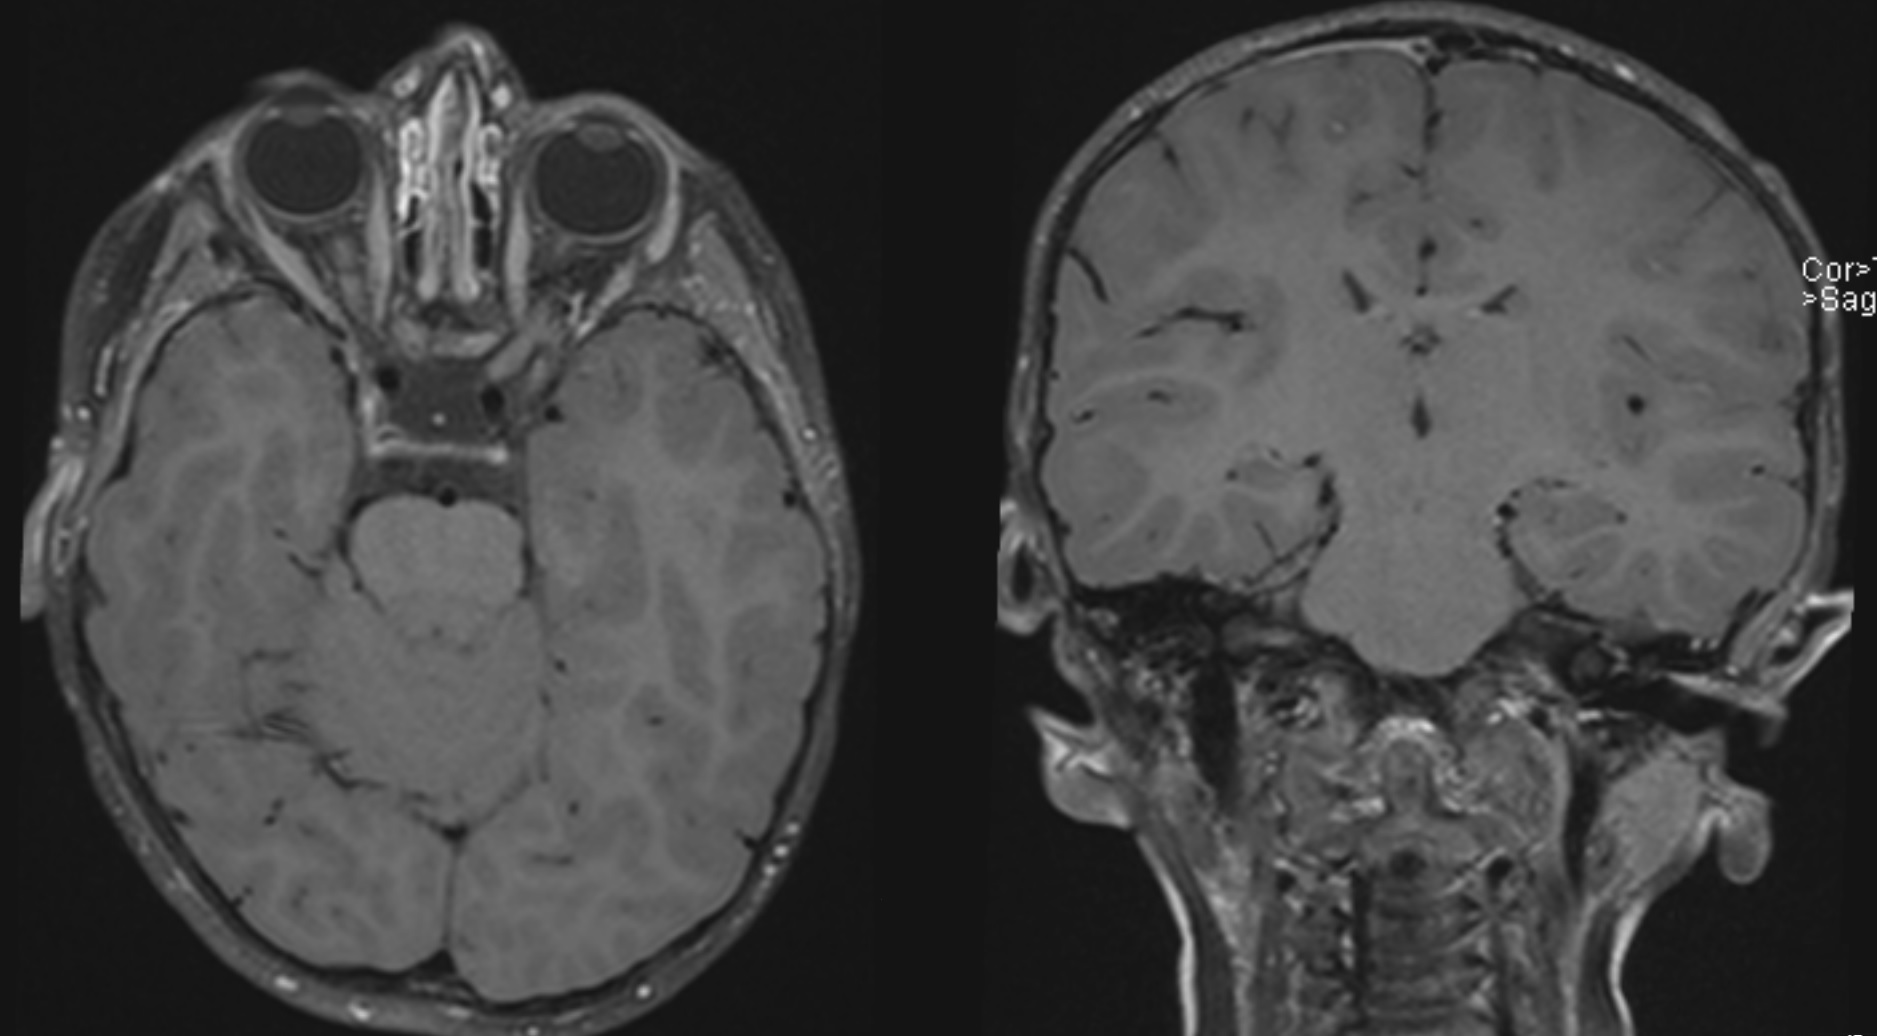 Axial and coronal post-contrast black blood images of the brain.